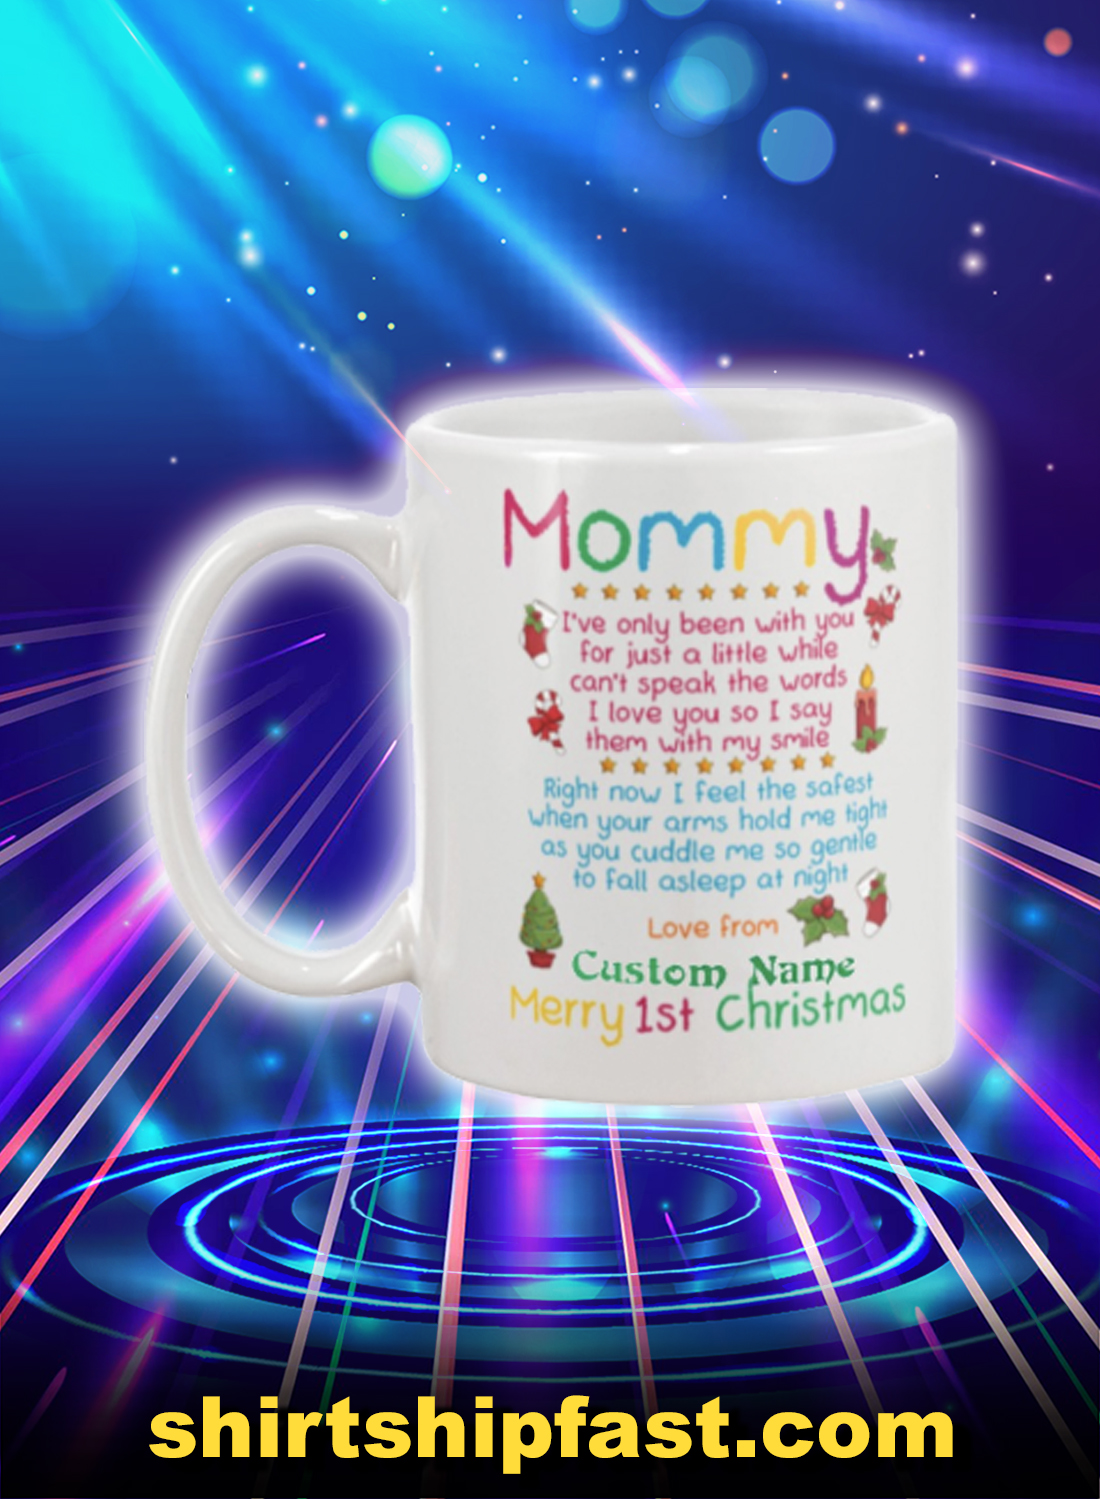 Merry 1st christmas mommy personalized custom name mug - Picture 1